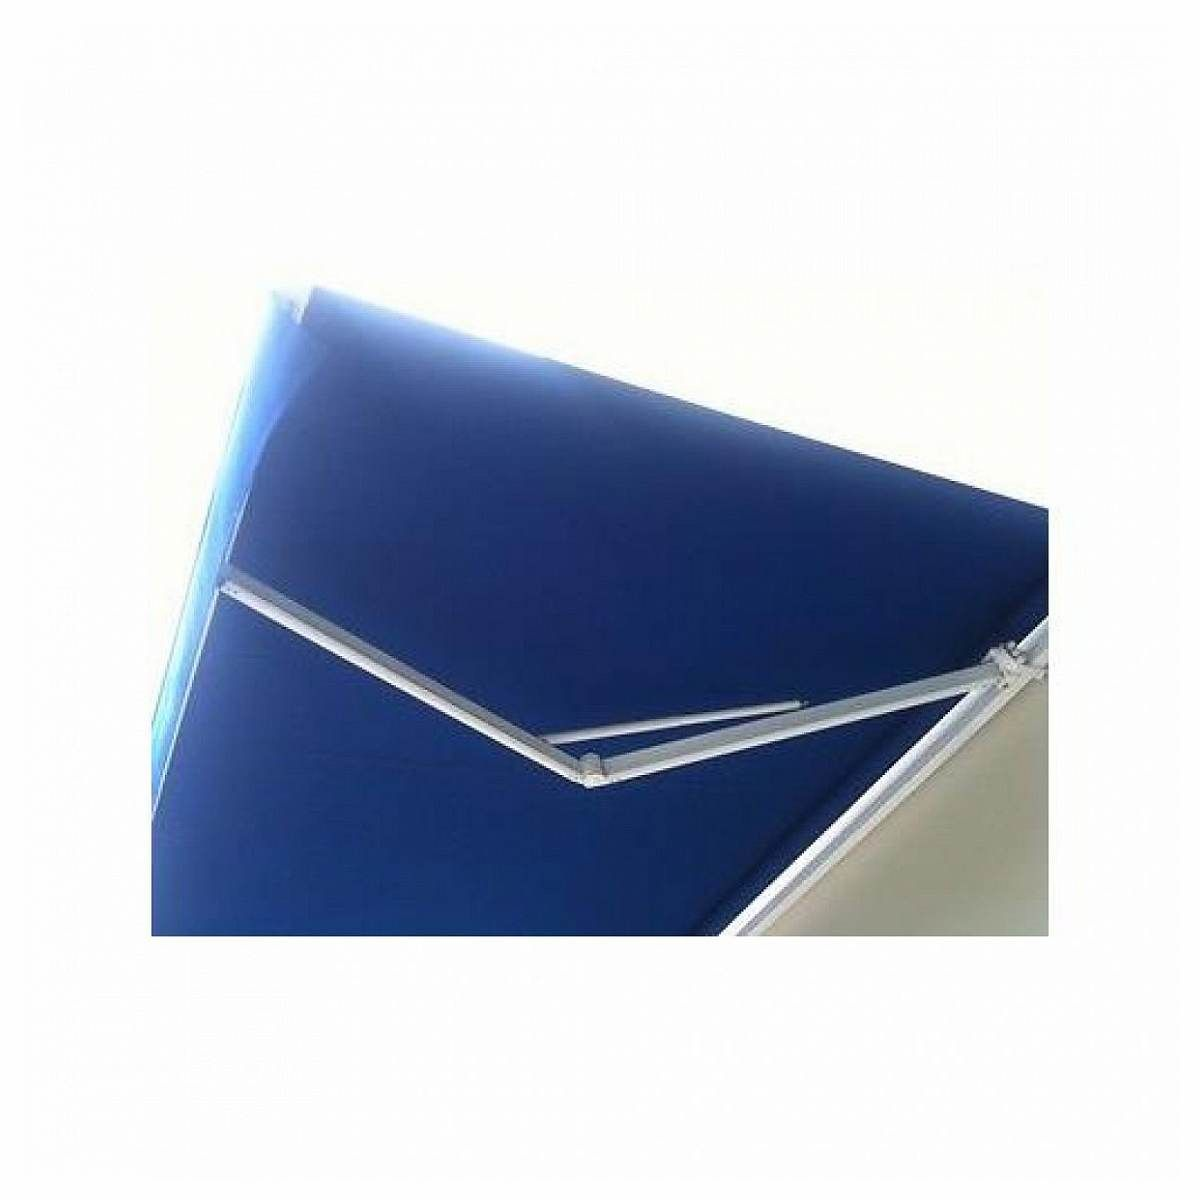 350 Aleko Retractable Awning 10 X 8 3m X 2 5m Solid Blue Patio Awning Patio Awning Blue Patio Retractable Awning